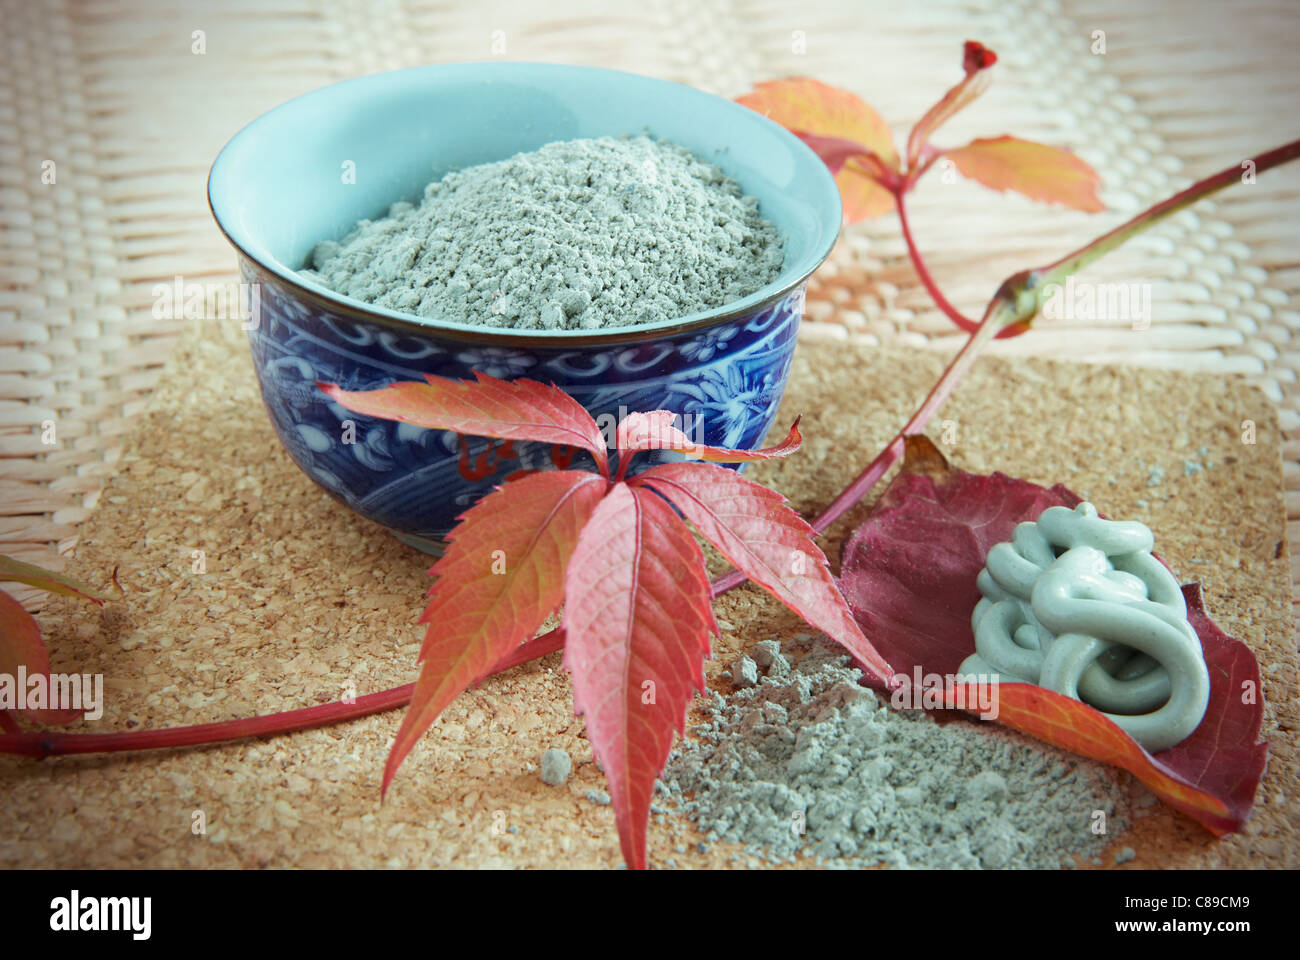 porcelain drinking bowl with powder of cosmetic blue clay - Stock Image